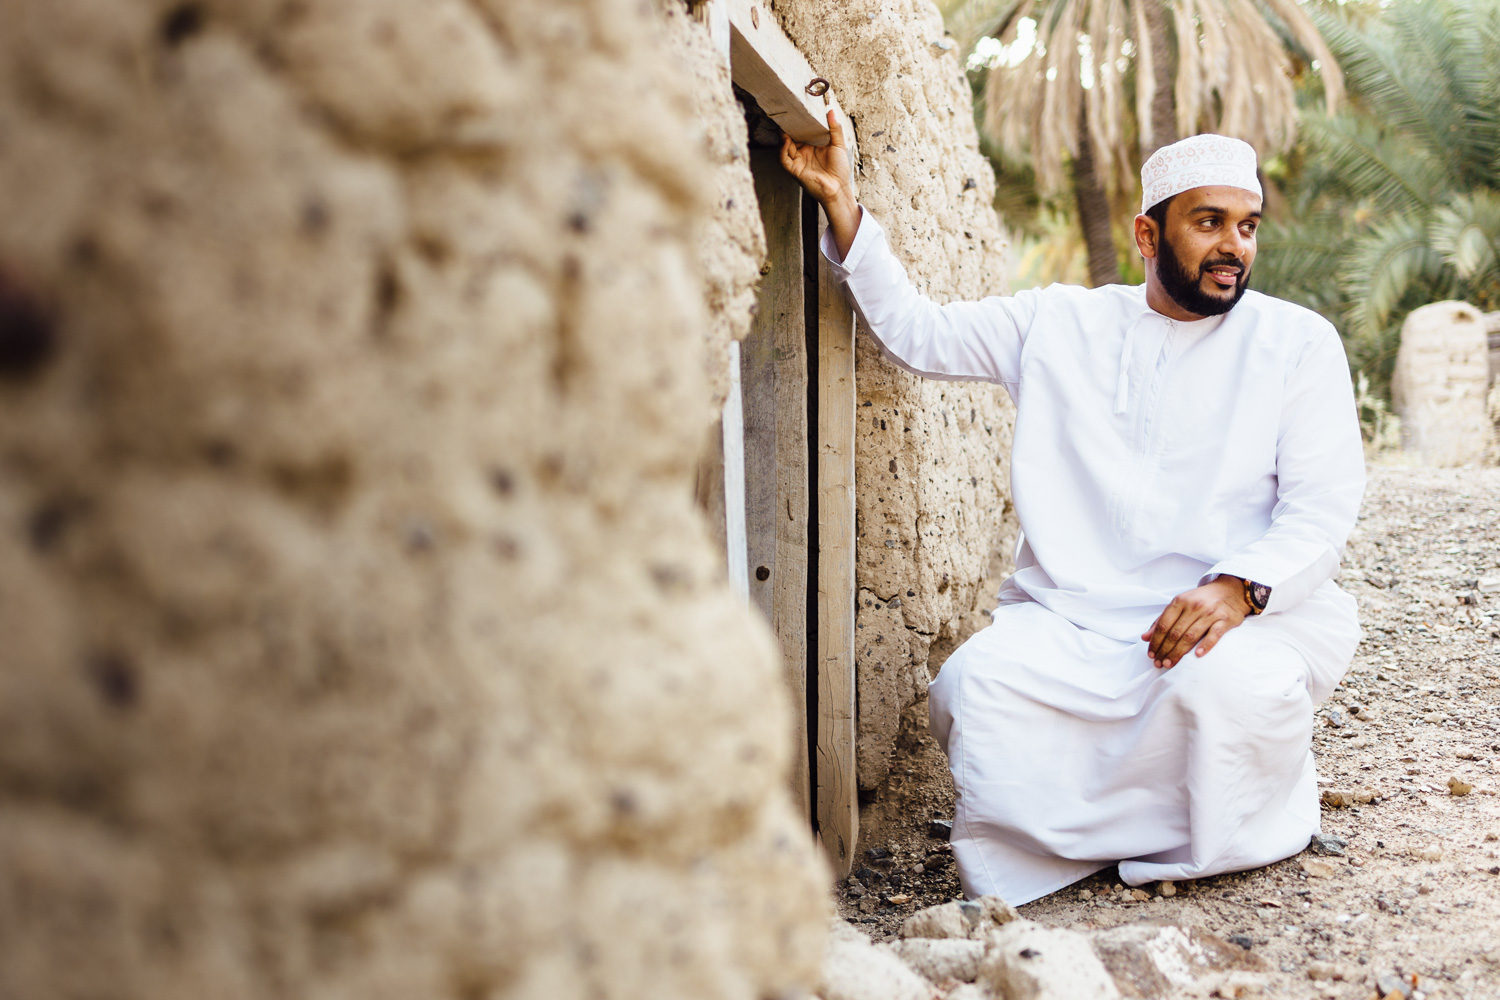 Village-Man-Guide-Ancient-Ruins-Tradition-Village-Oman-Daniel-Durazo-Photography-Durazophotography